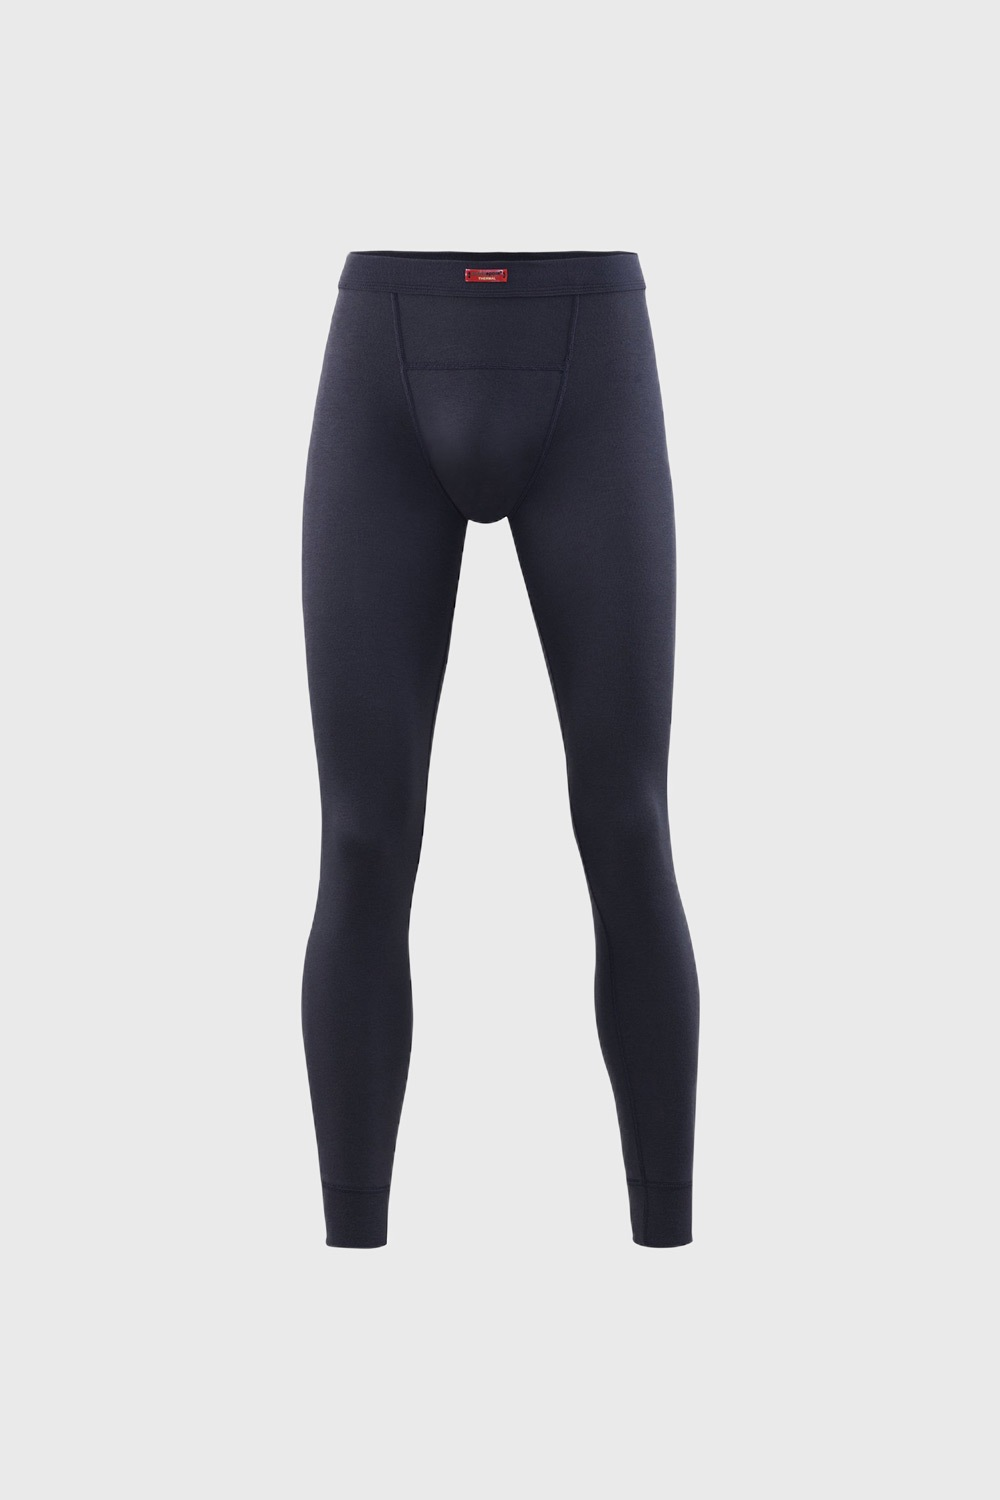 BLACKSPADE Thermal Active II férfi funkcionális leggings antracit-színű S